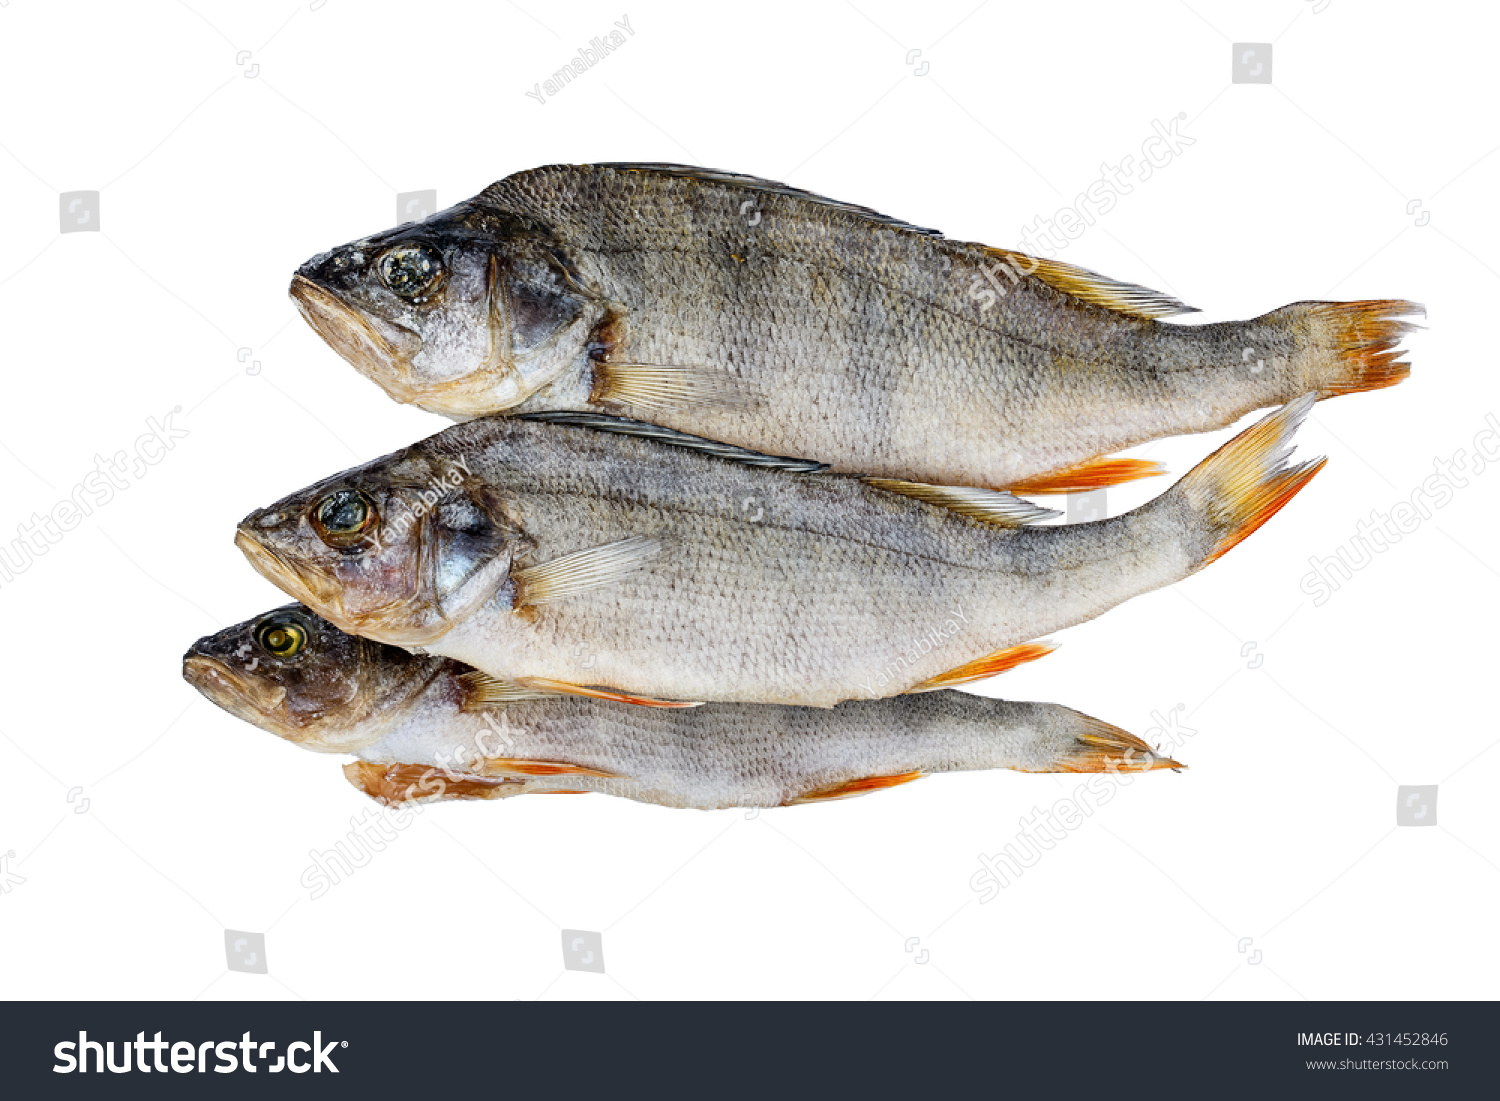 Dried Fish Perch Stock Photo 431452846 - Shutterstock for Dried Fish Clipart  75sfw